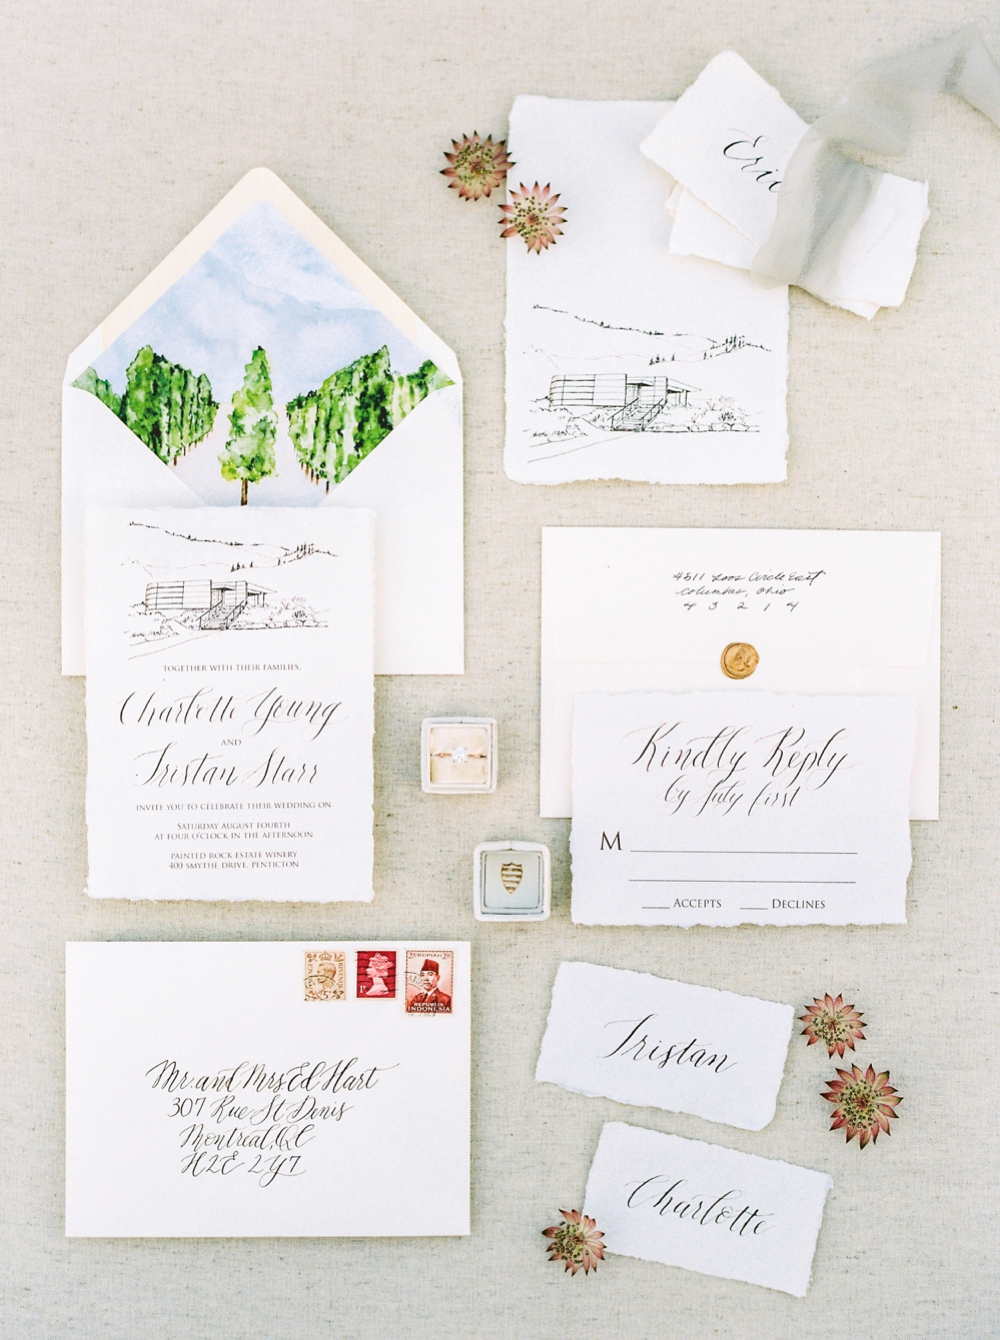 watercolor painting and calligraphy wedding stationery invitation   Painted Rock Winery   Penticton wedding photographer   Kelowna Wedding photography   Okanagan Wedding photographers